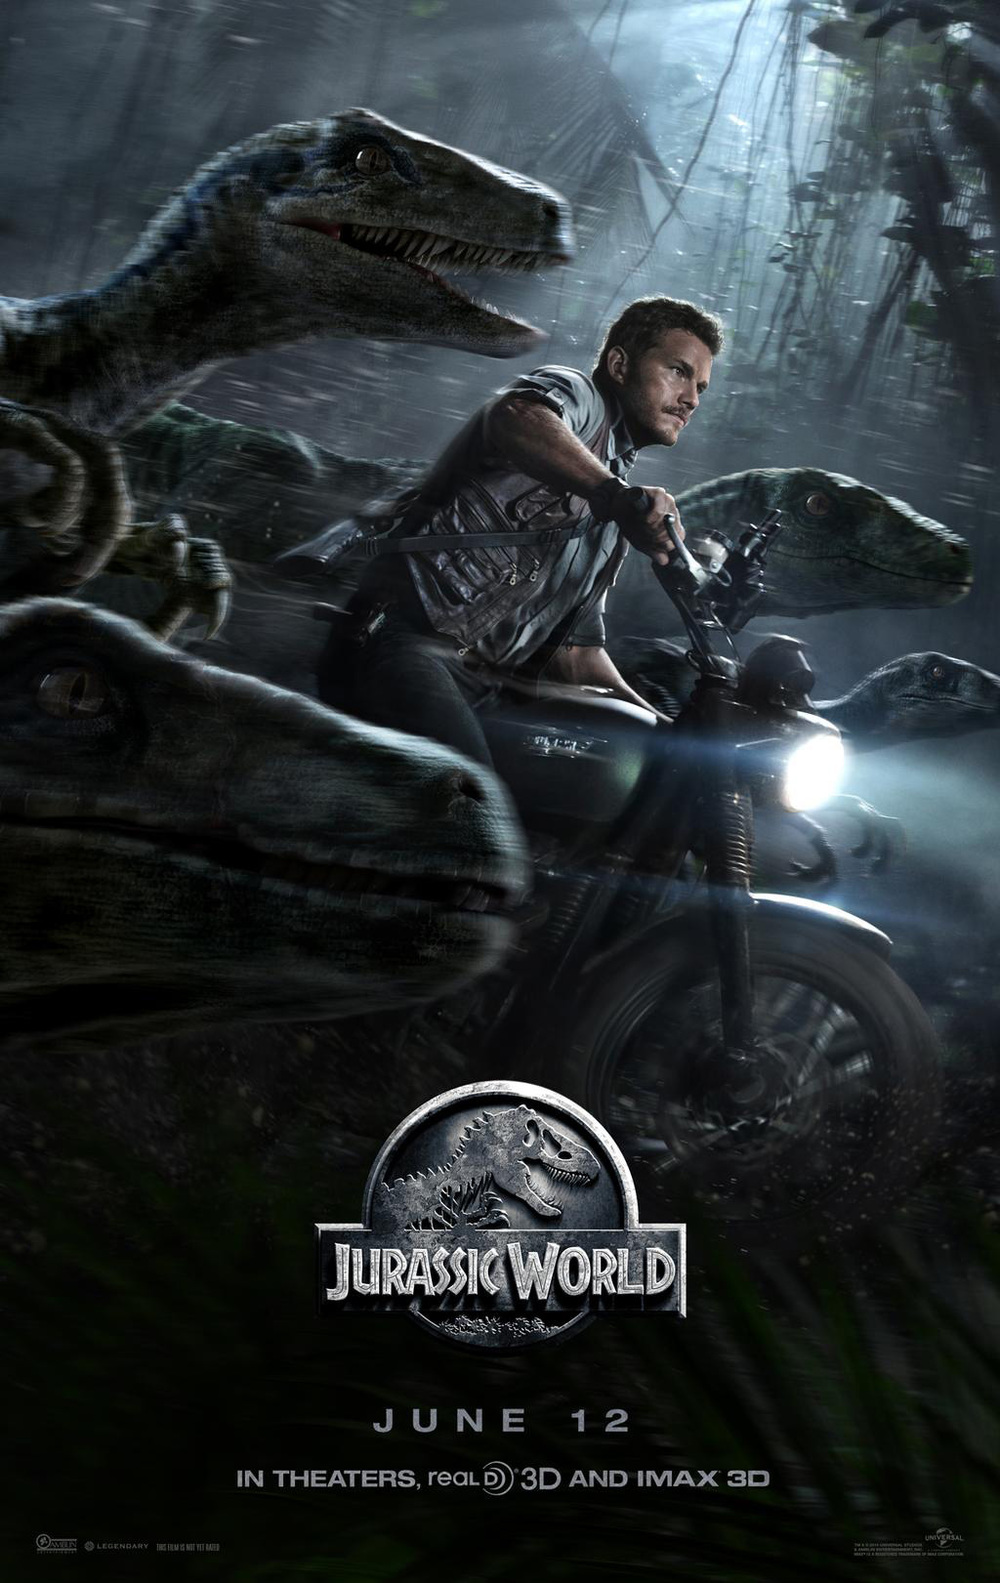 jurassic-world-own-raptors-poster.jpg